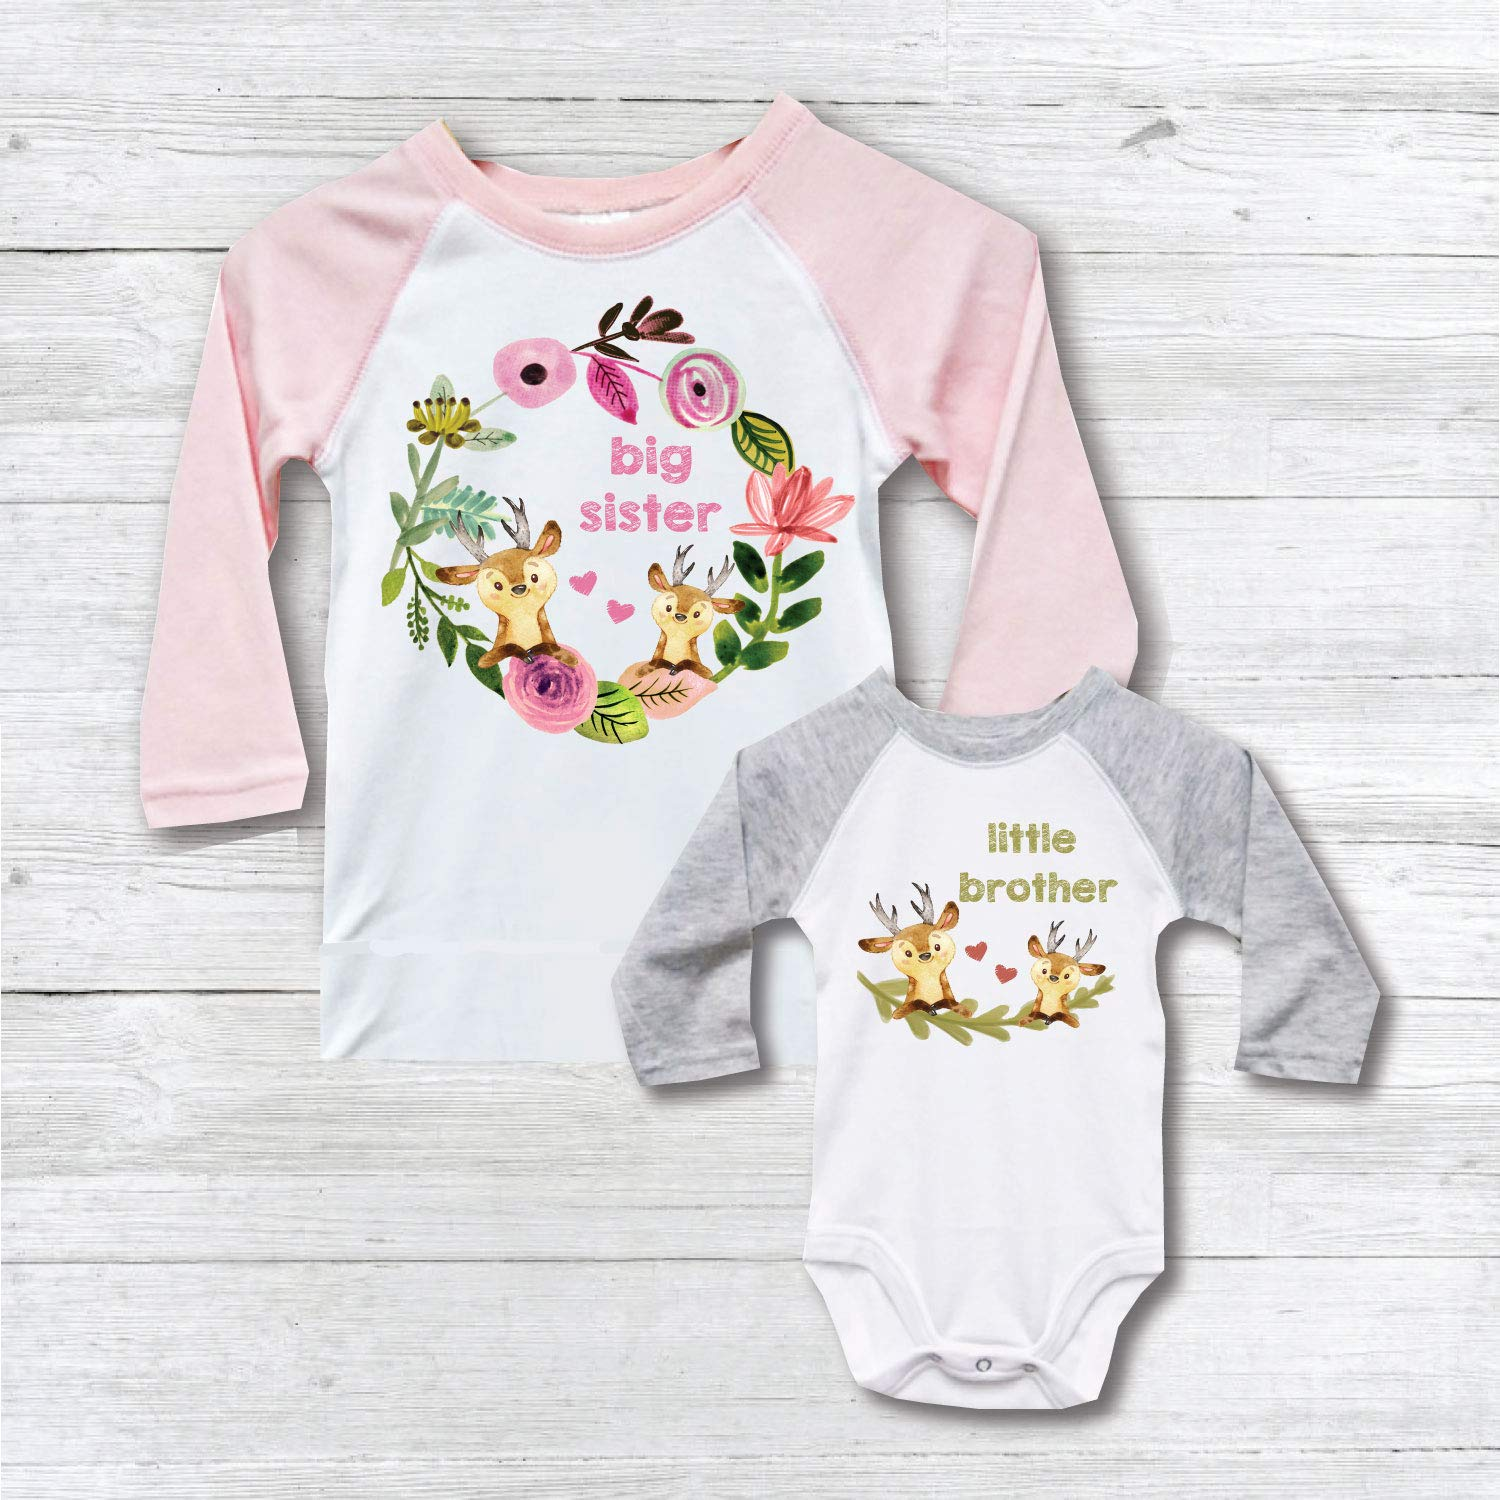 75f90436b Amazon.com: Big Sister Little Brother Shirts Onesie New Big Sister Matching  Baby Shower Gift: Handmade